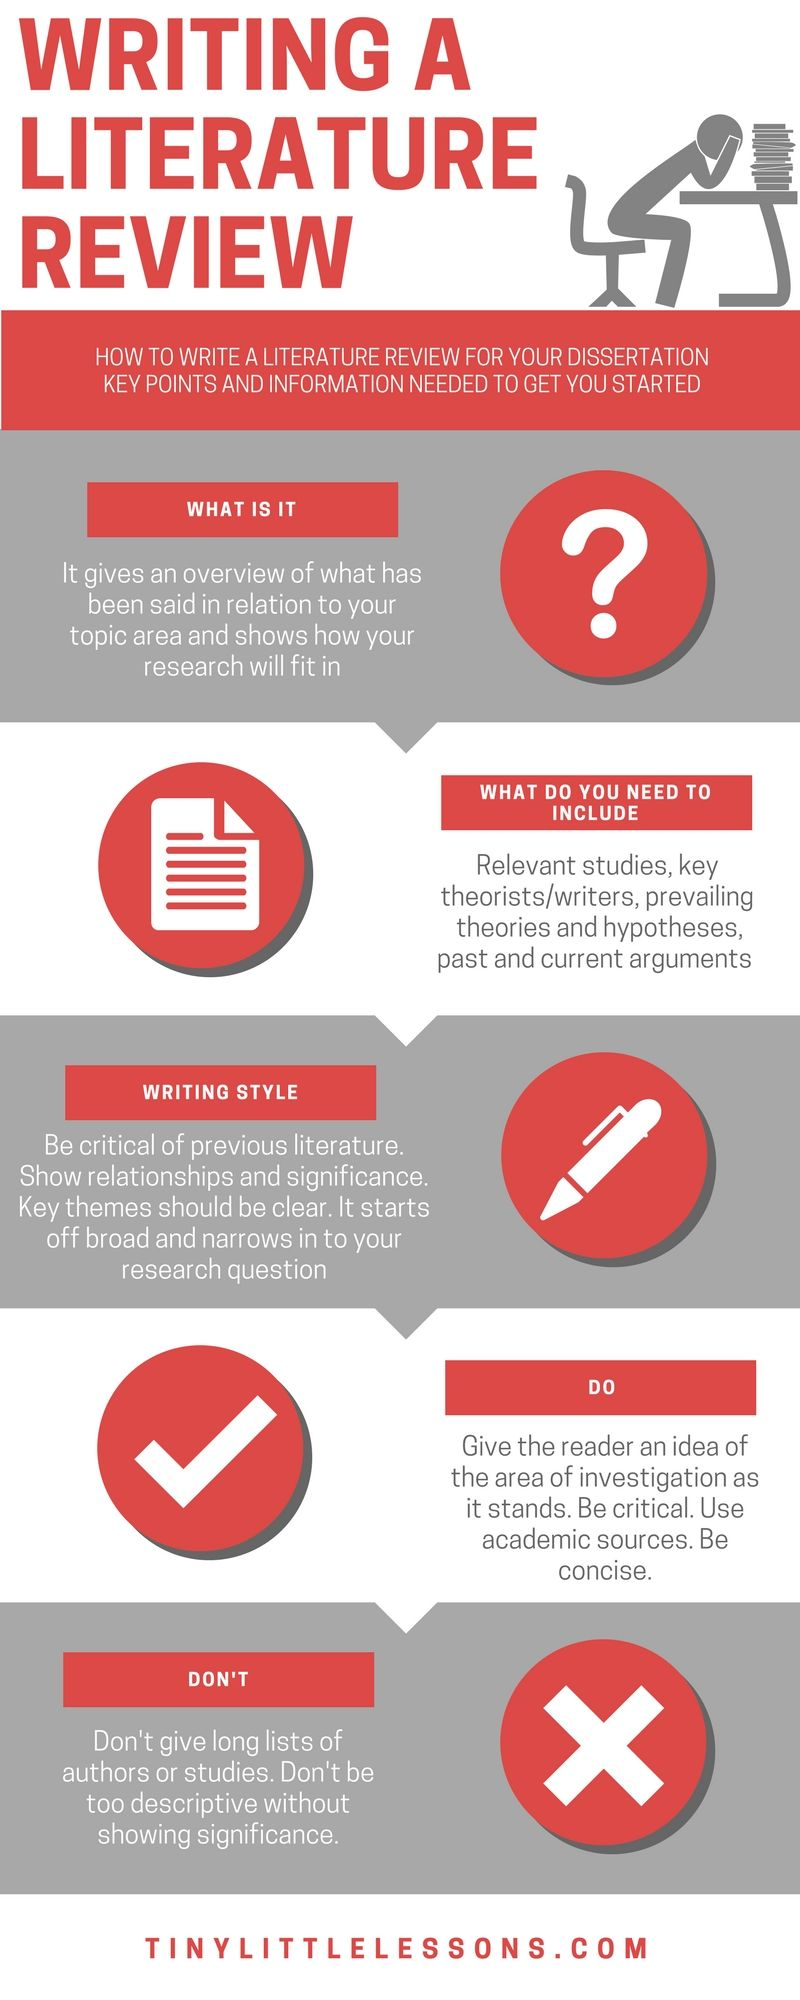 Writing A Literature Review  Tips Tricks Blog Post  Advice For